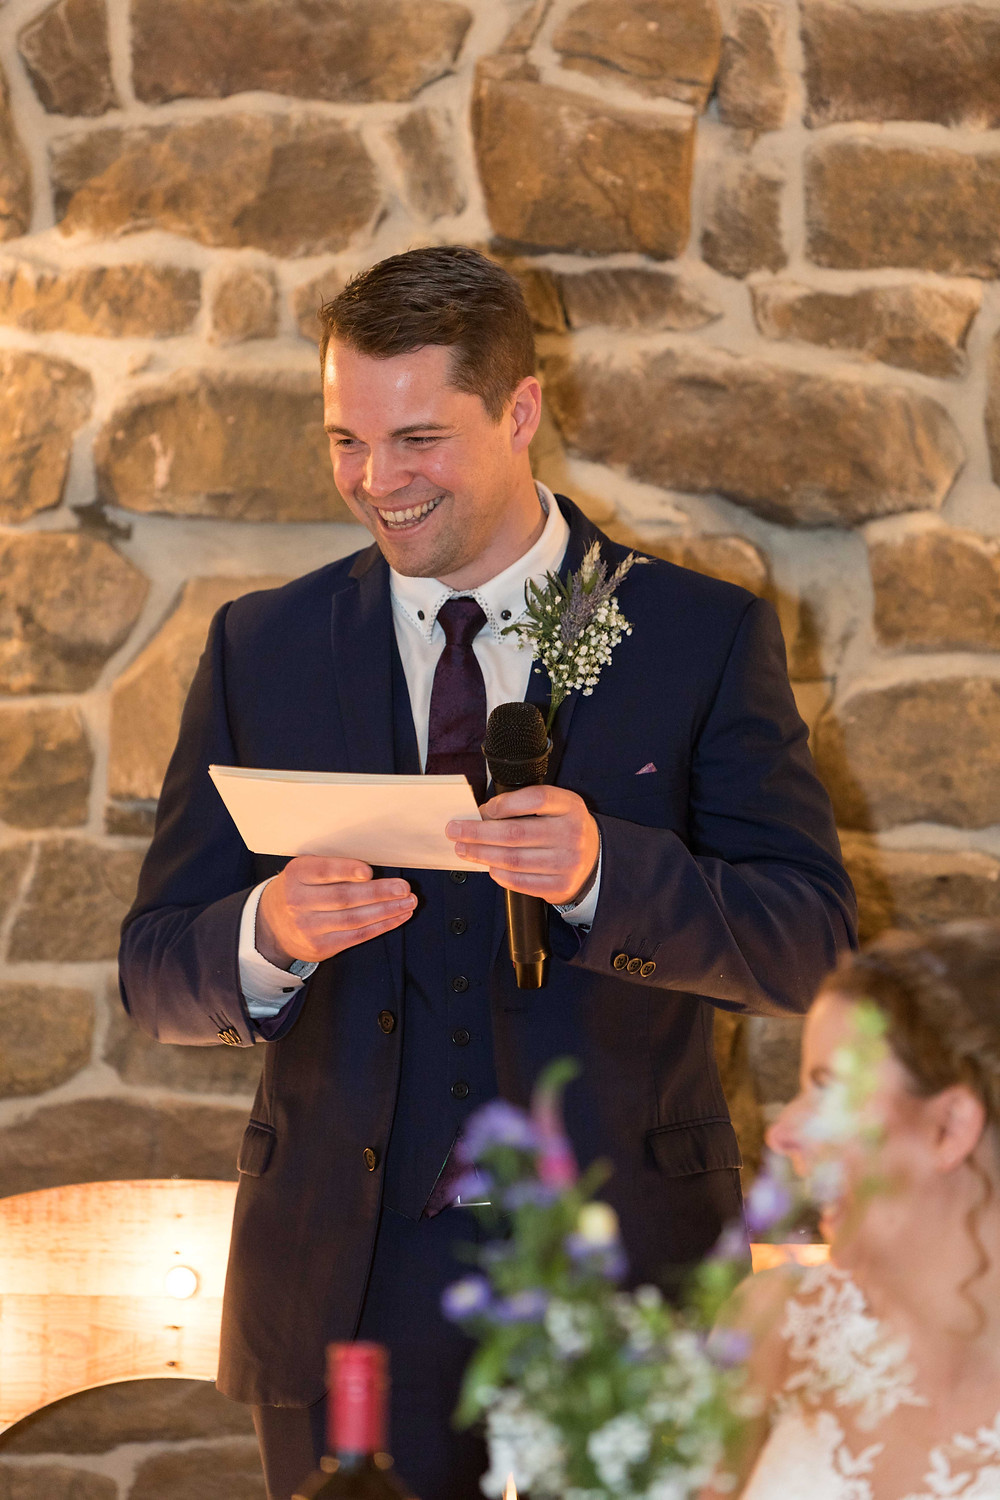 Photo of the best man smiling during his speech